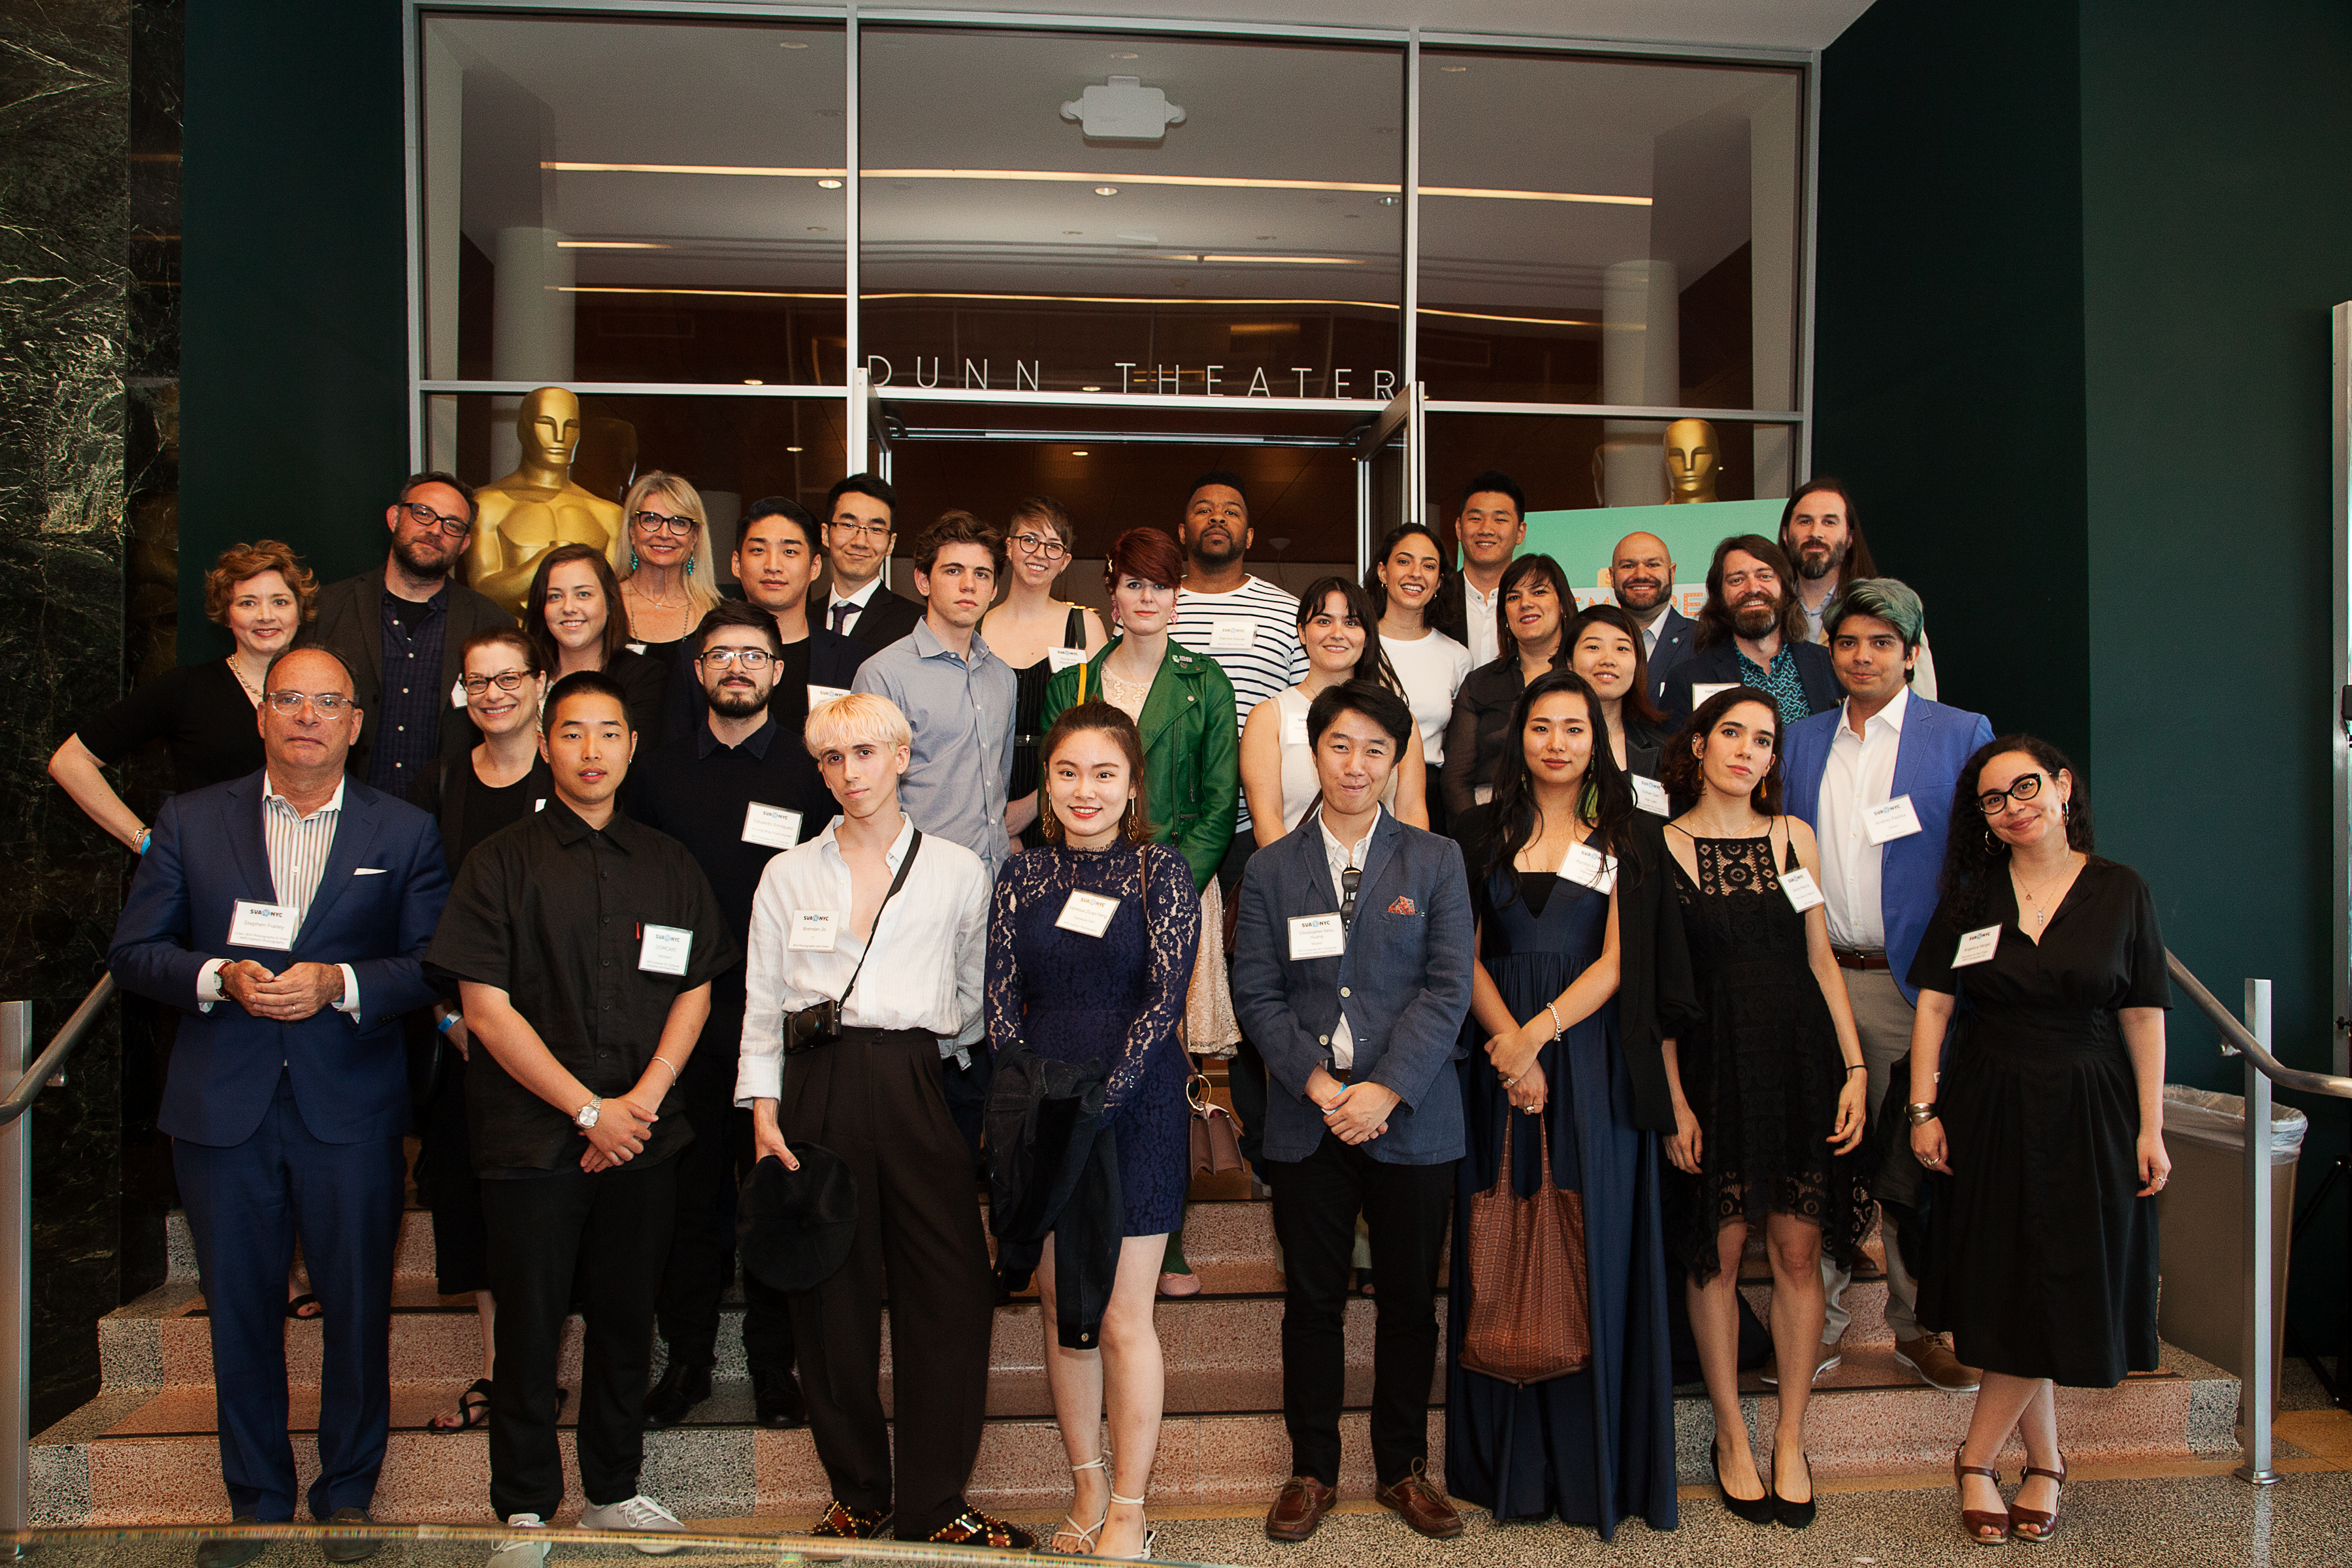 Recent graduates and SVA faculty and staff pose before the SVA Premieres screening on May 31.